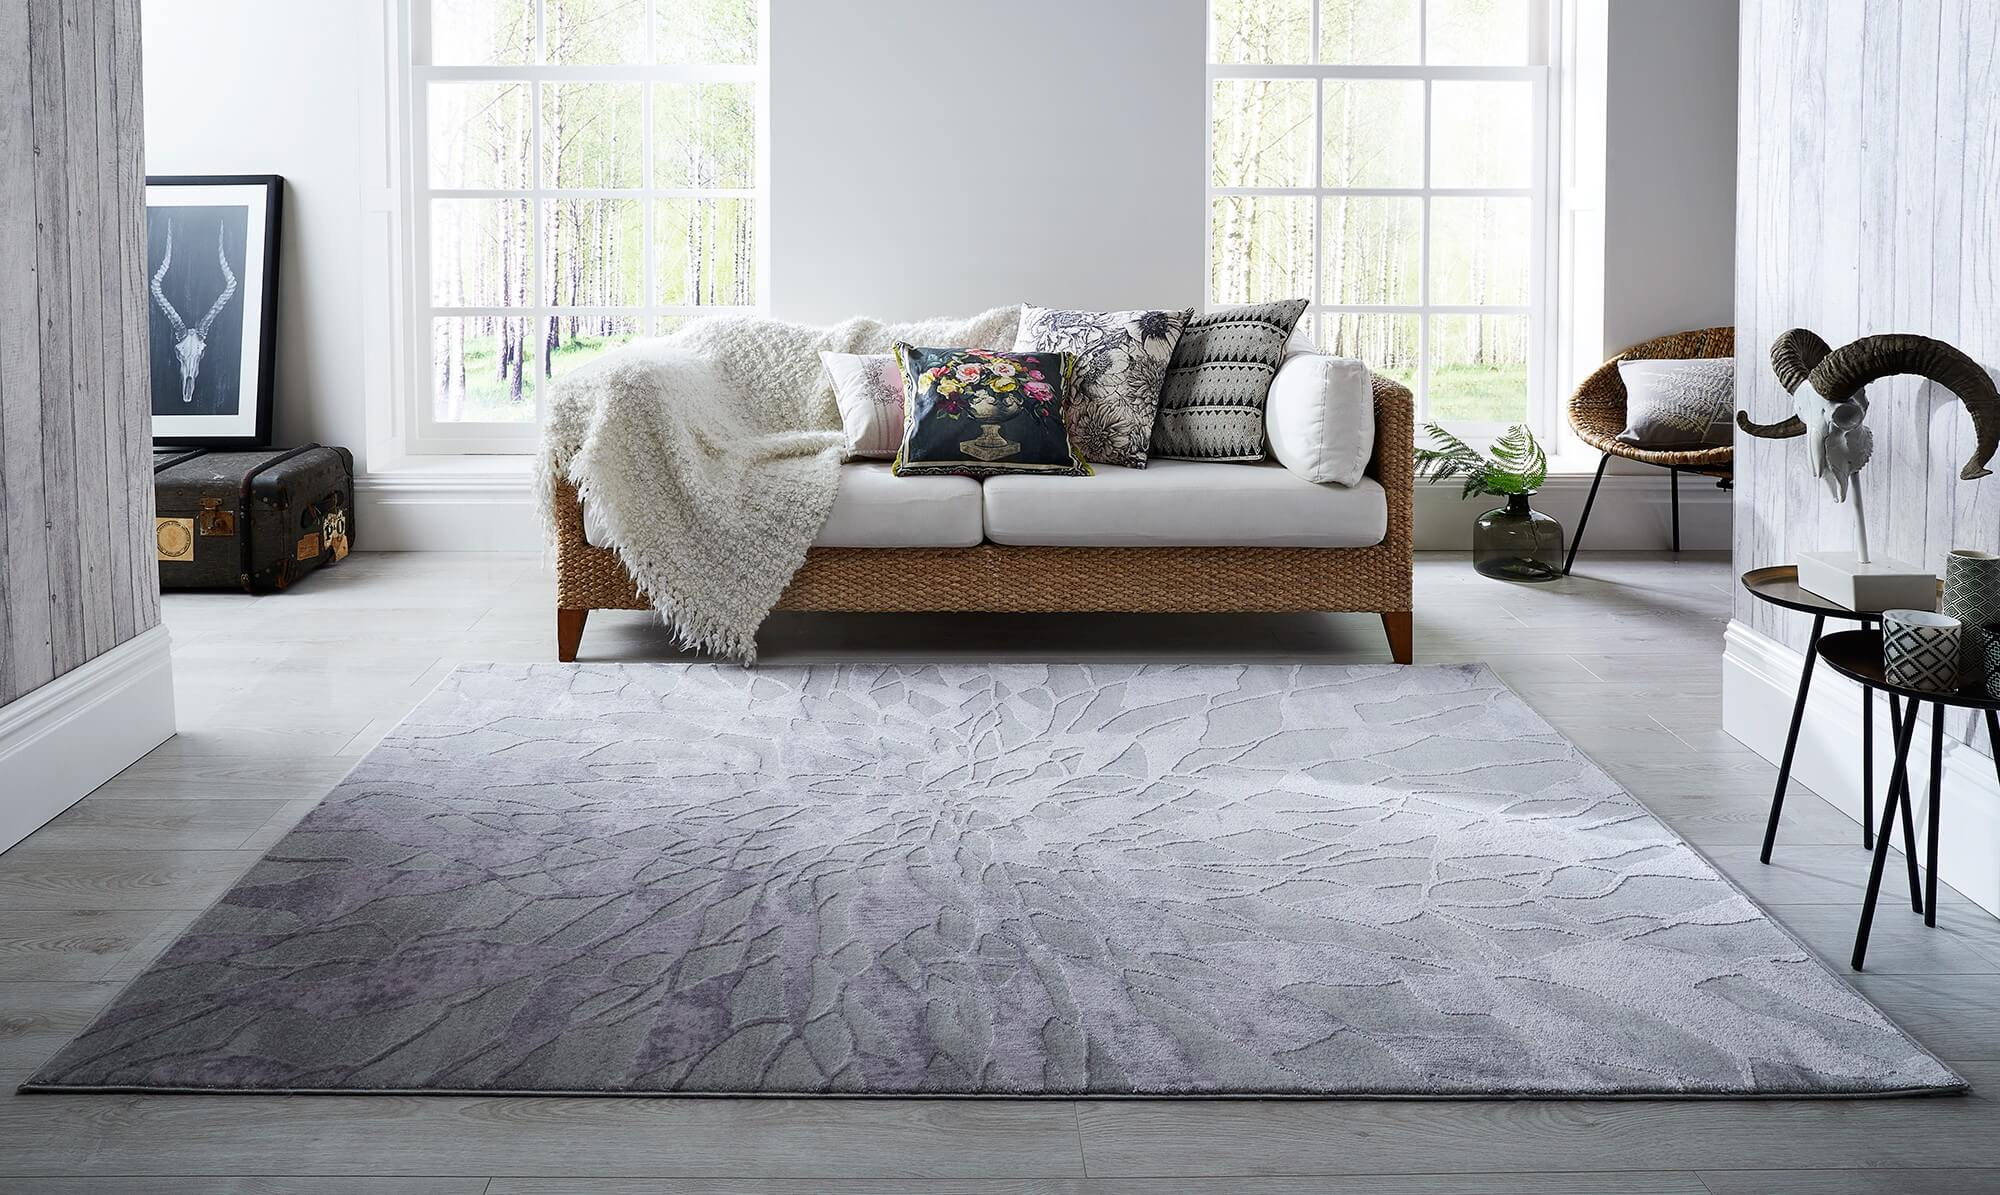 Gorgeous Alpaca grey rug from Fishpools in modern home